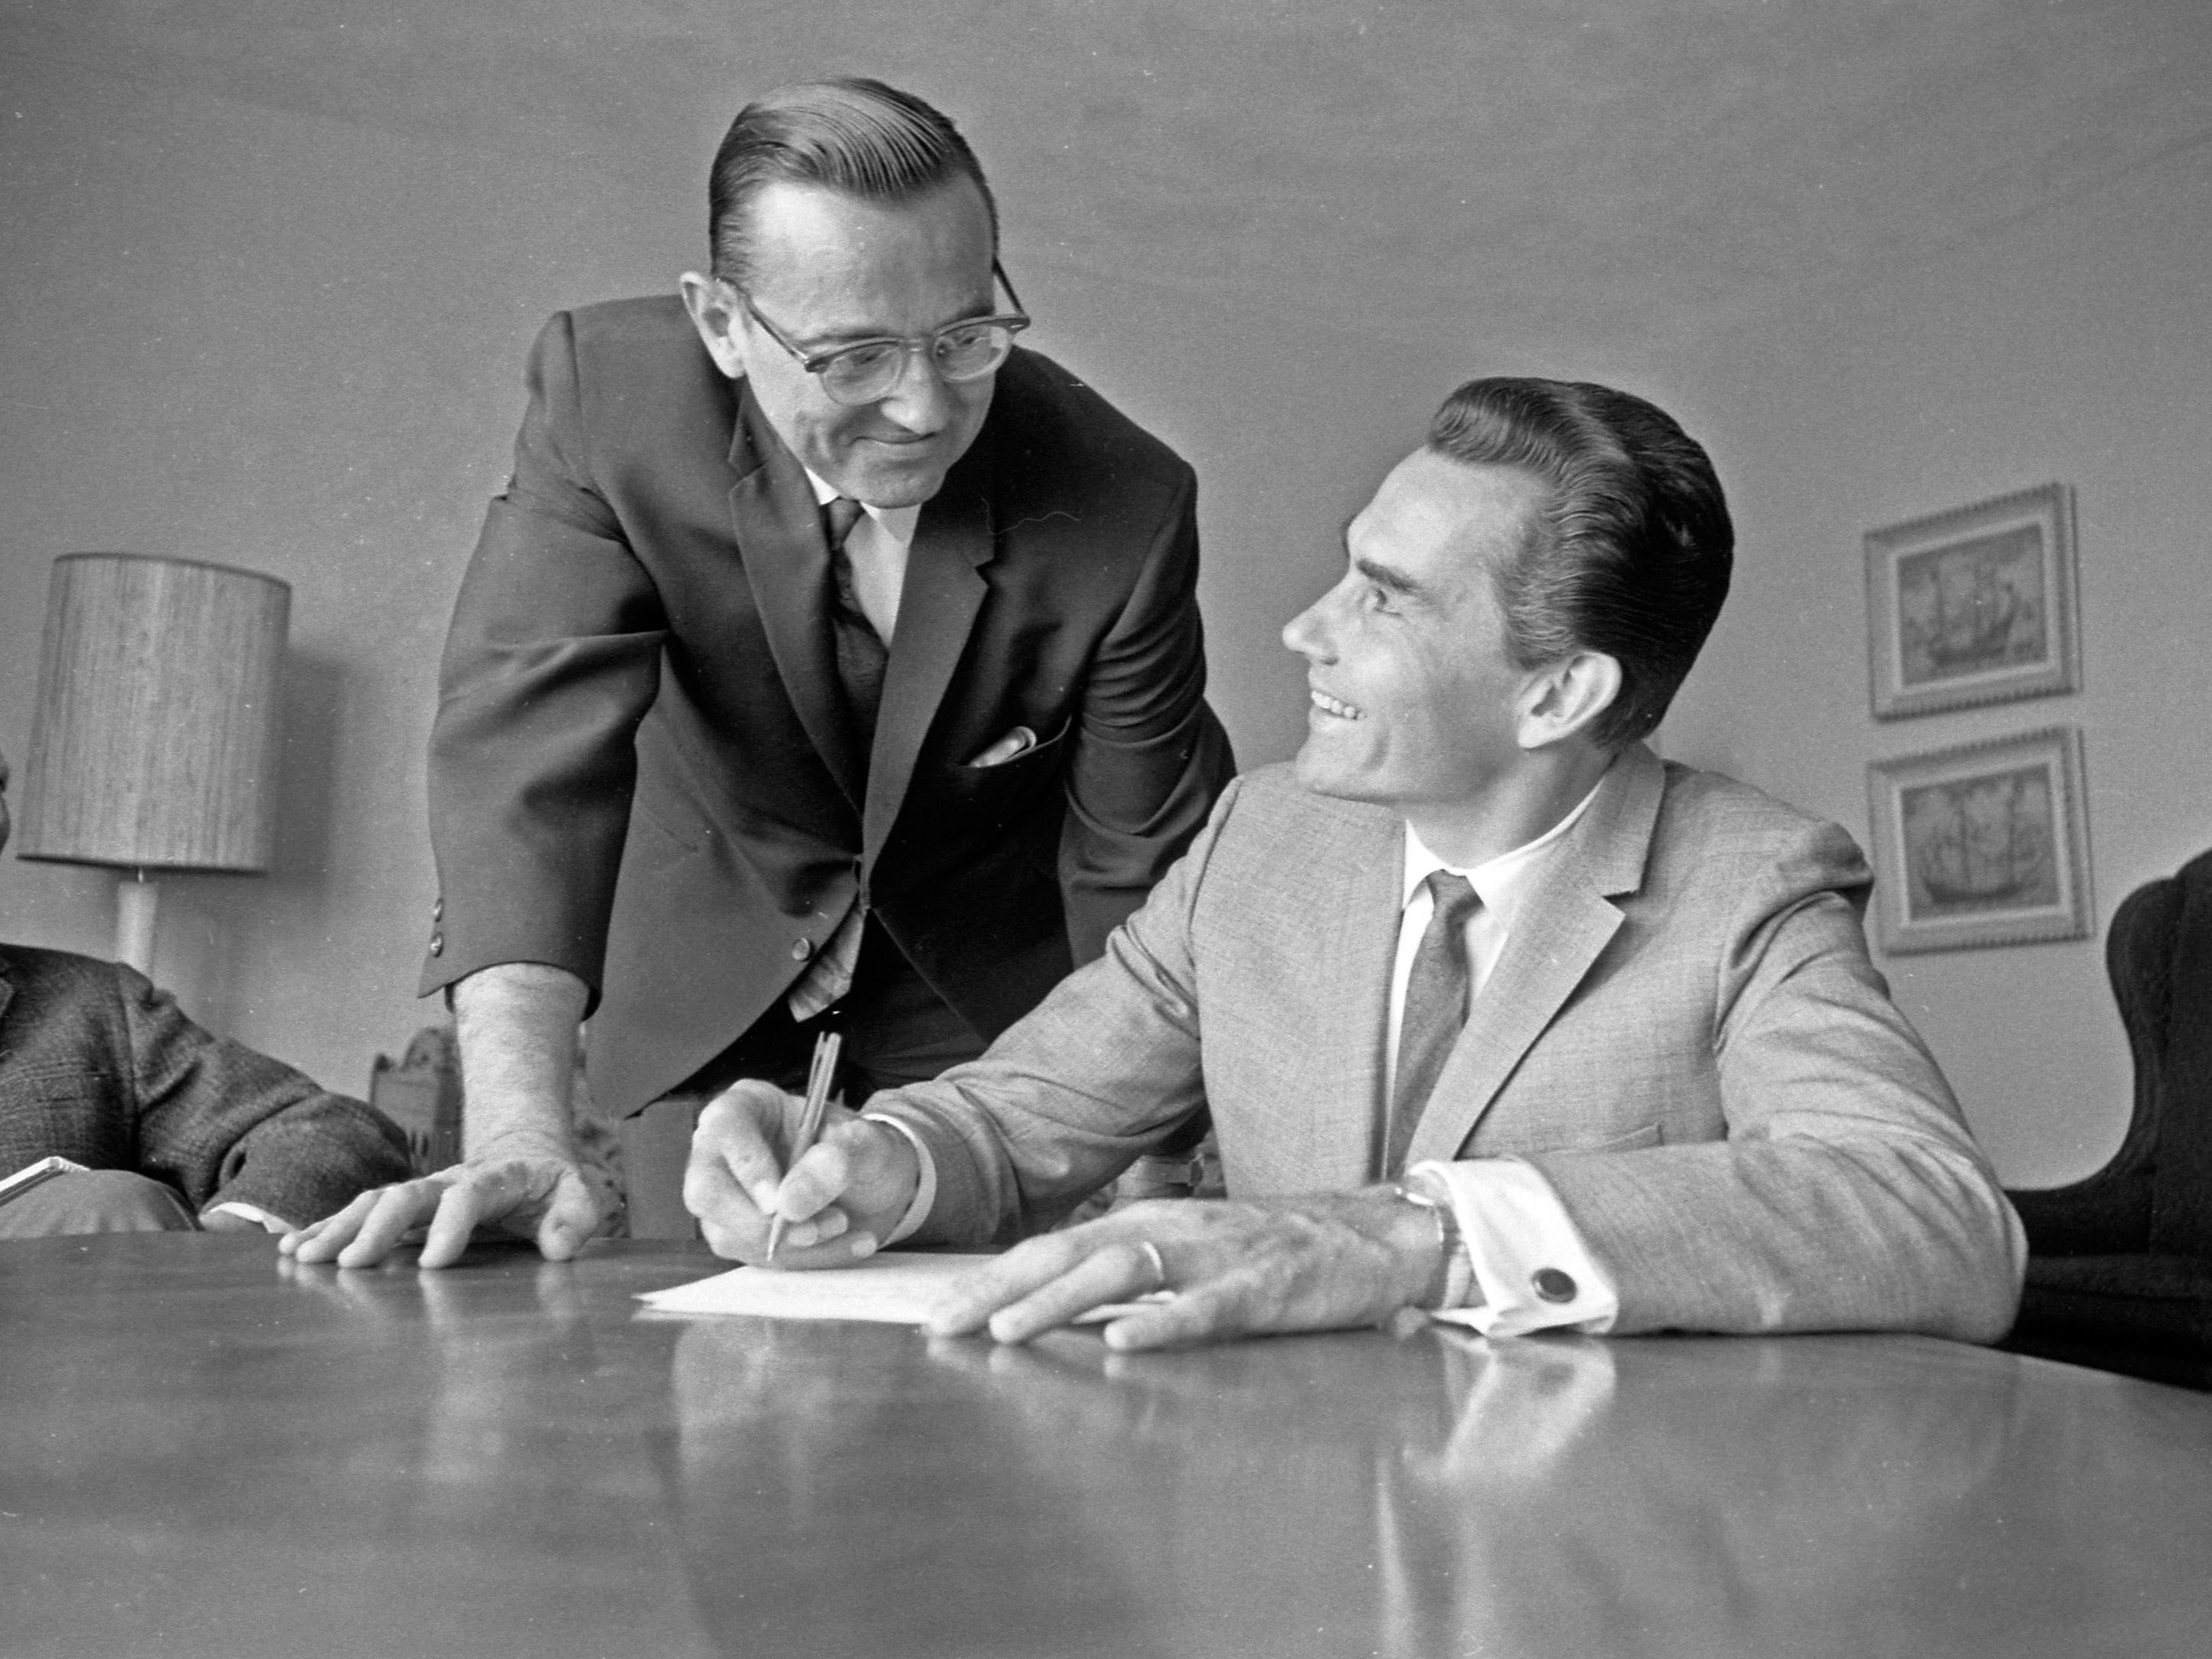 Kenneth Schermerhorn (right) signs his contract to become music director and conductor of the Milwaukee Symphony Orchestra on Sept. 6, 1967, in this unpublished Milwaukee Journal photo. (The other men in the photo weren't identified.) The Milwaukee Sentinel reported he signed a two-year contract with an option for a third, at $30,000 a year. Schermerhorn was 37 at the time.